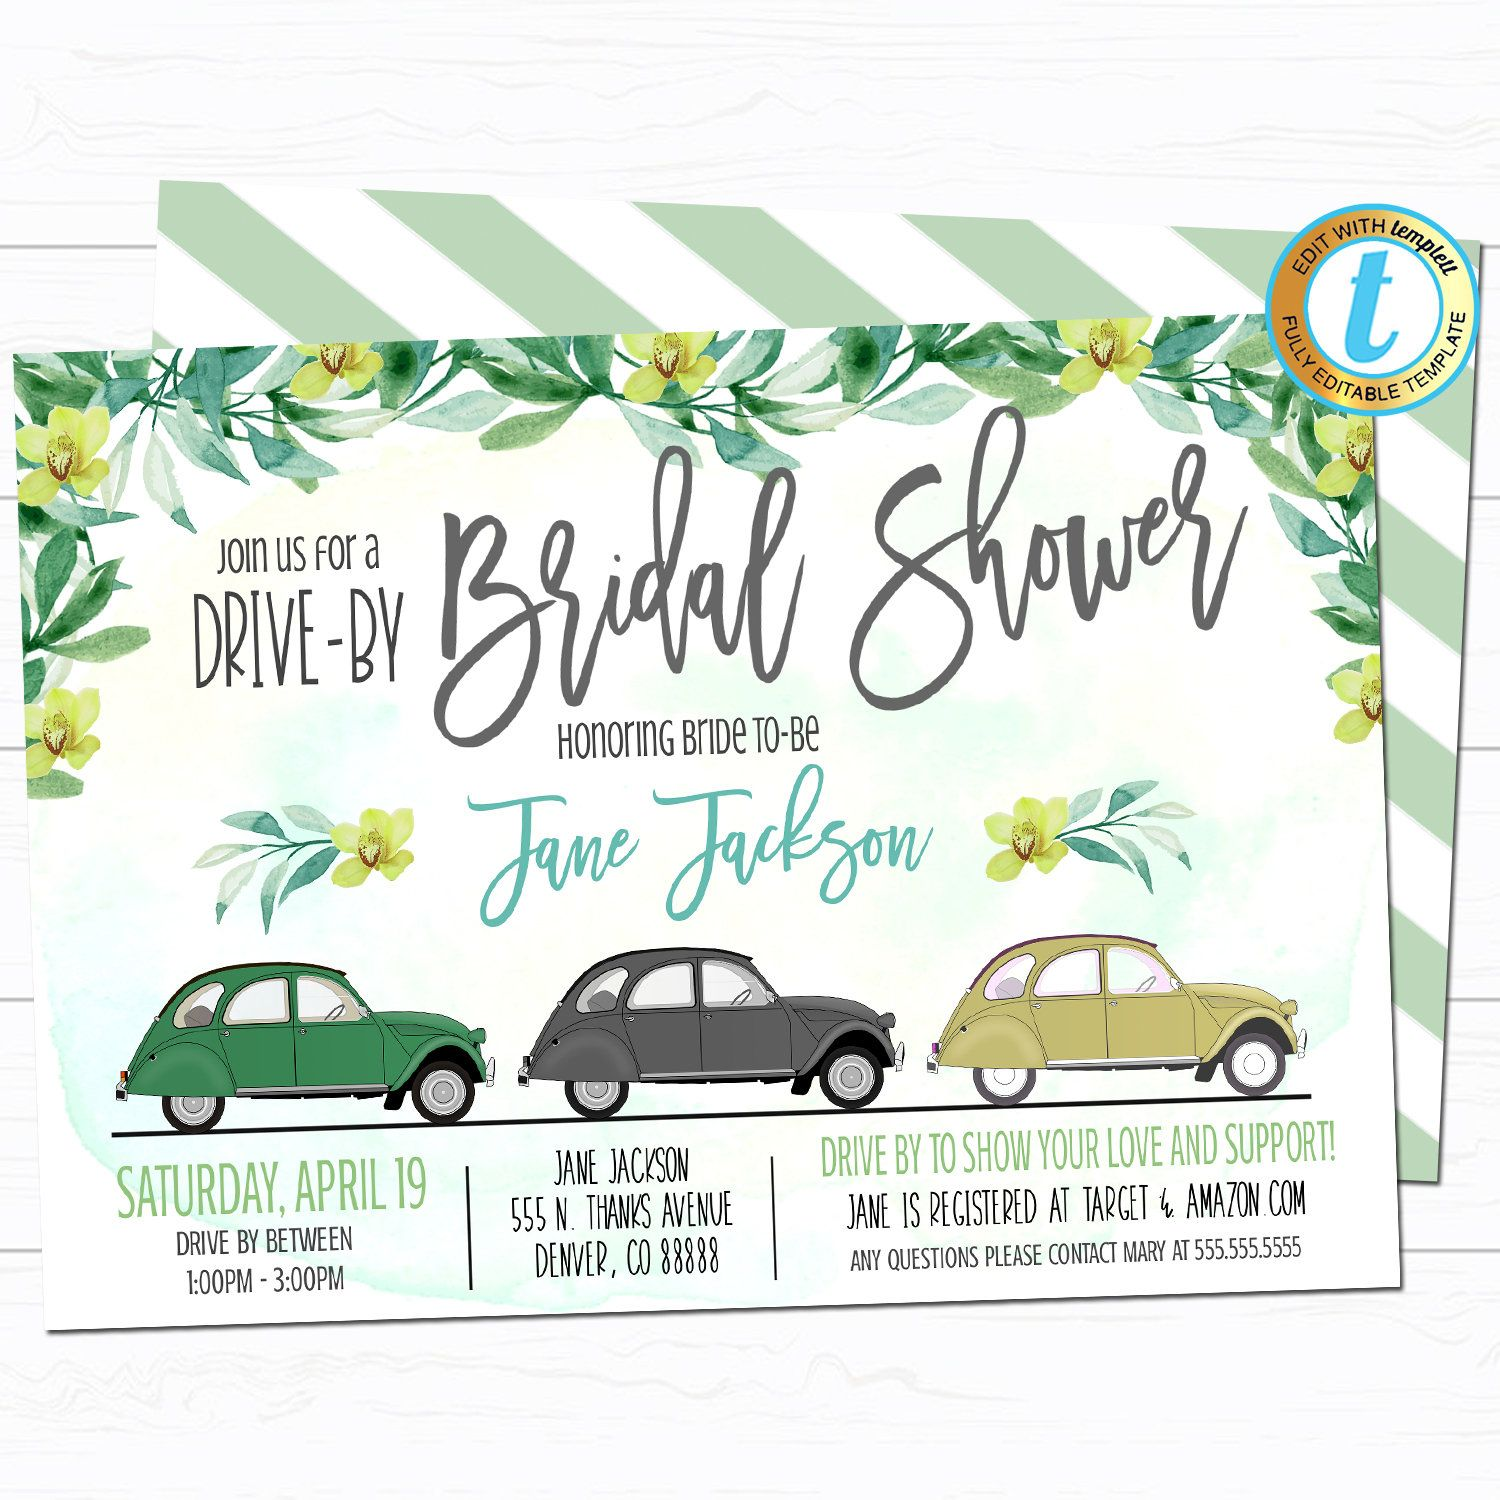 Drive By Bridal Shower Parade Invitation Virtual Wedding Etsy In 2020 Bridal Party Invitations Wedding Party Invites Bridal Shower Invitations